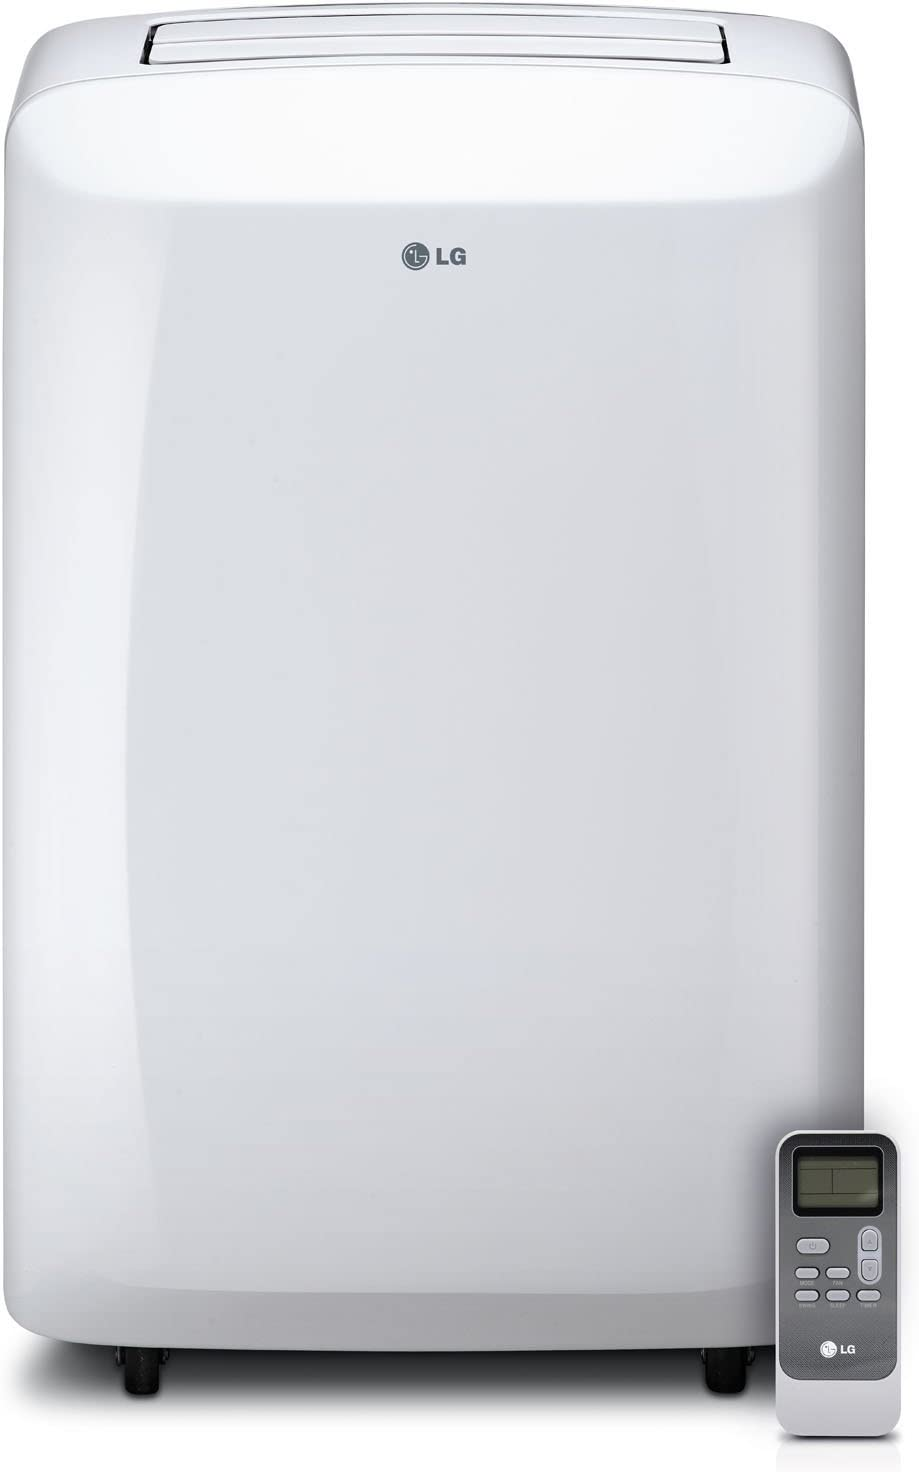 Rooms up to 200-Sq Renewed White LG Portable 115V Air Conditioner Ft